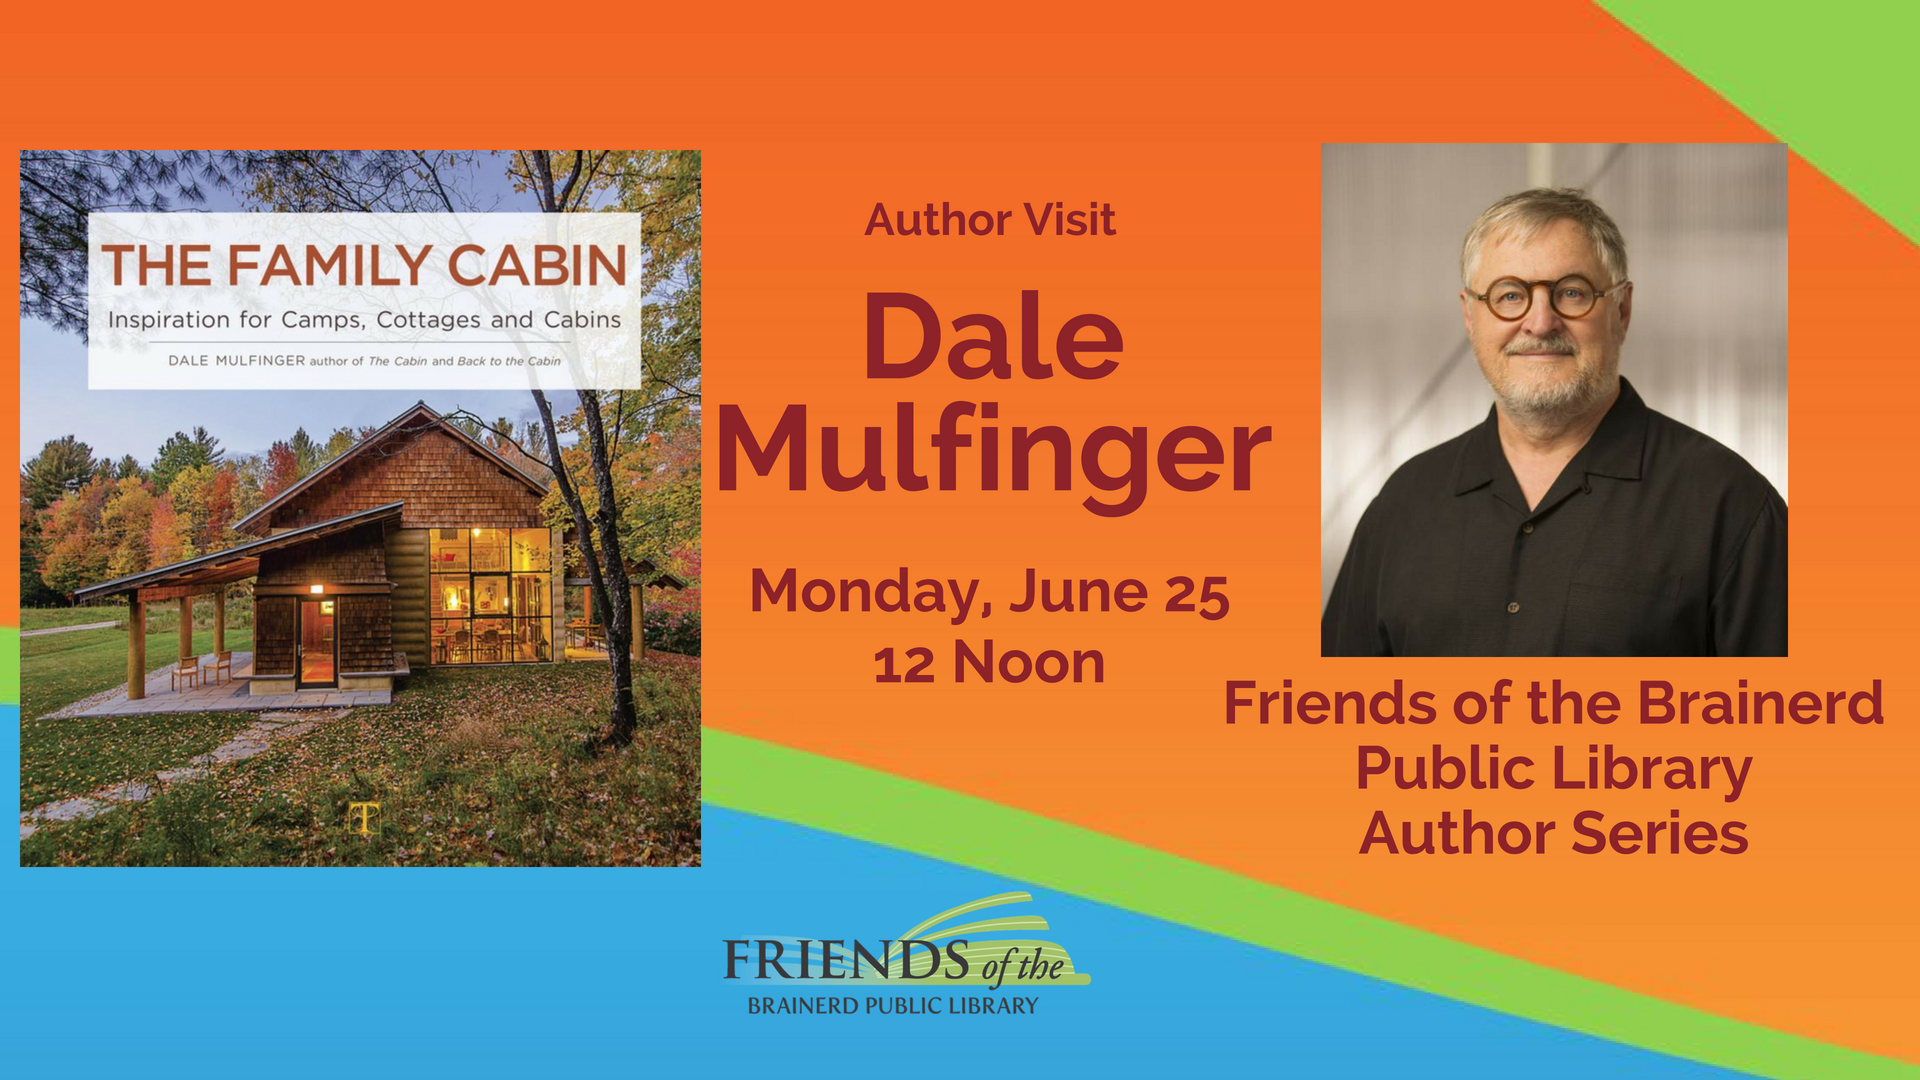 Brown Bag Author Visit: Dale Mulfinger